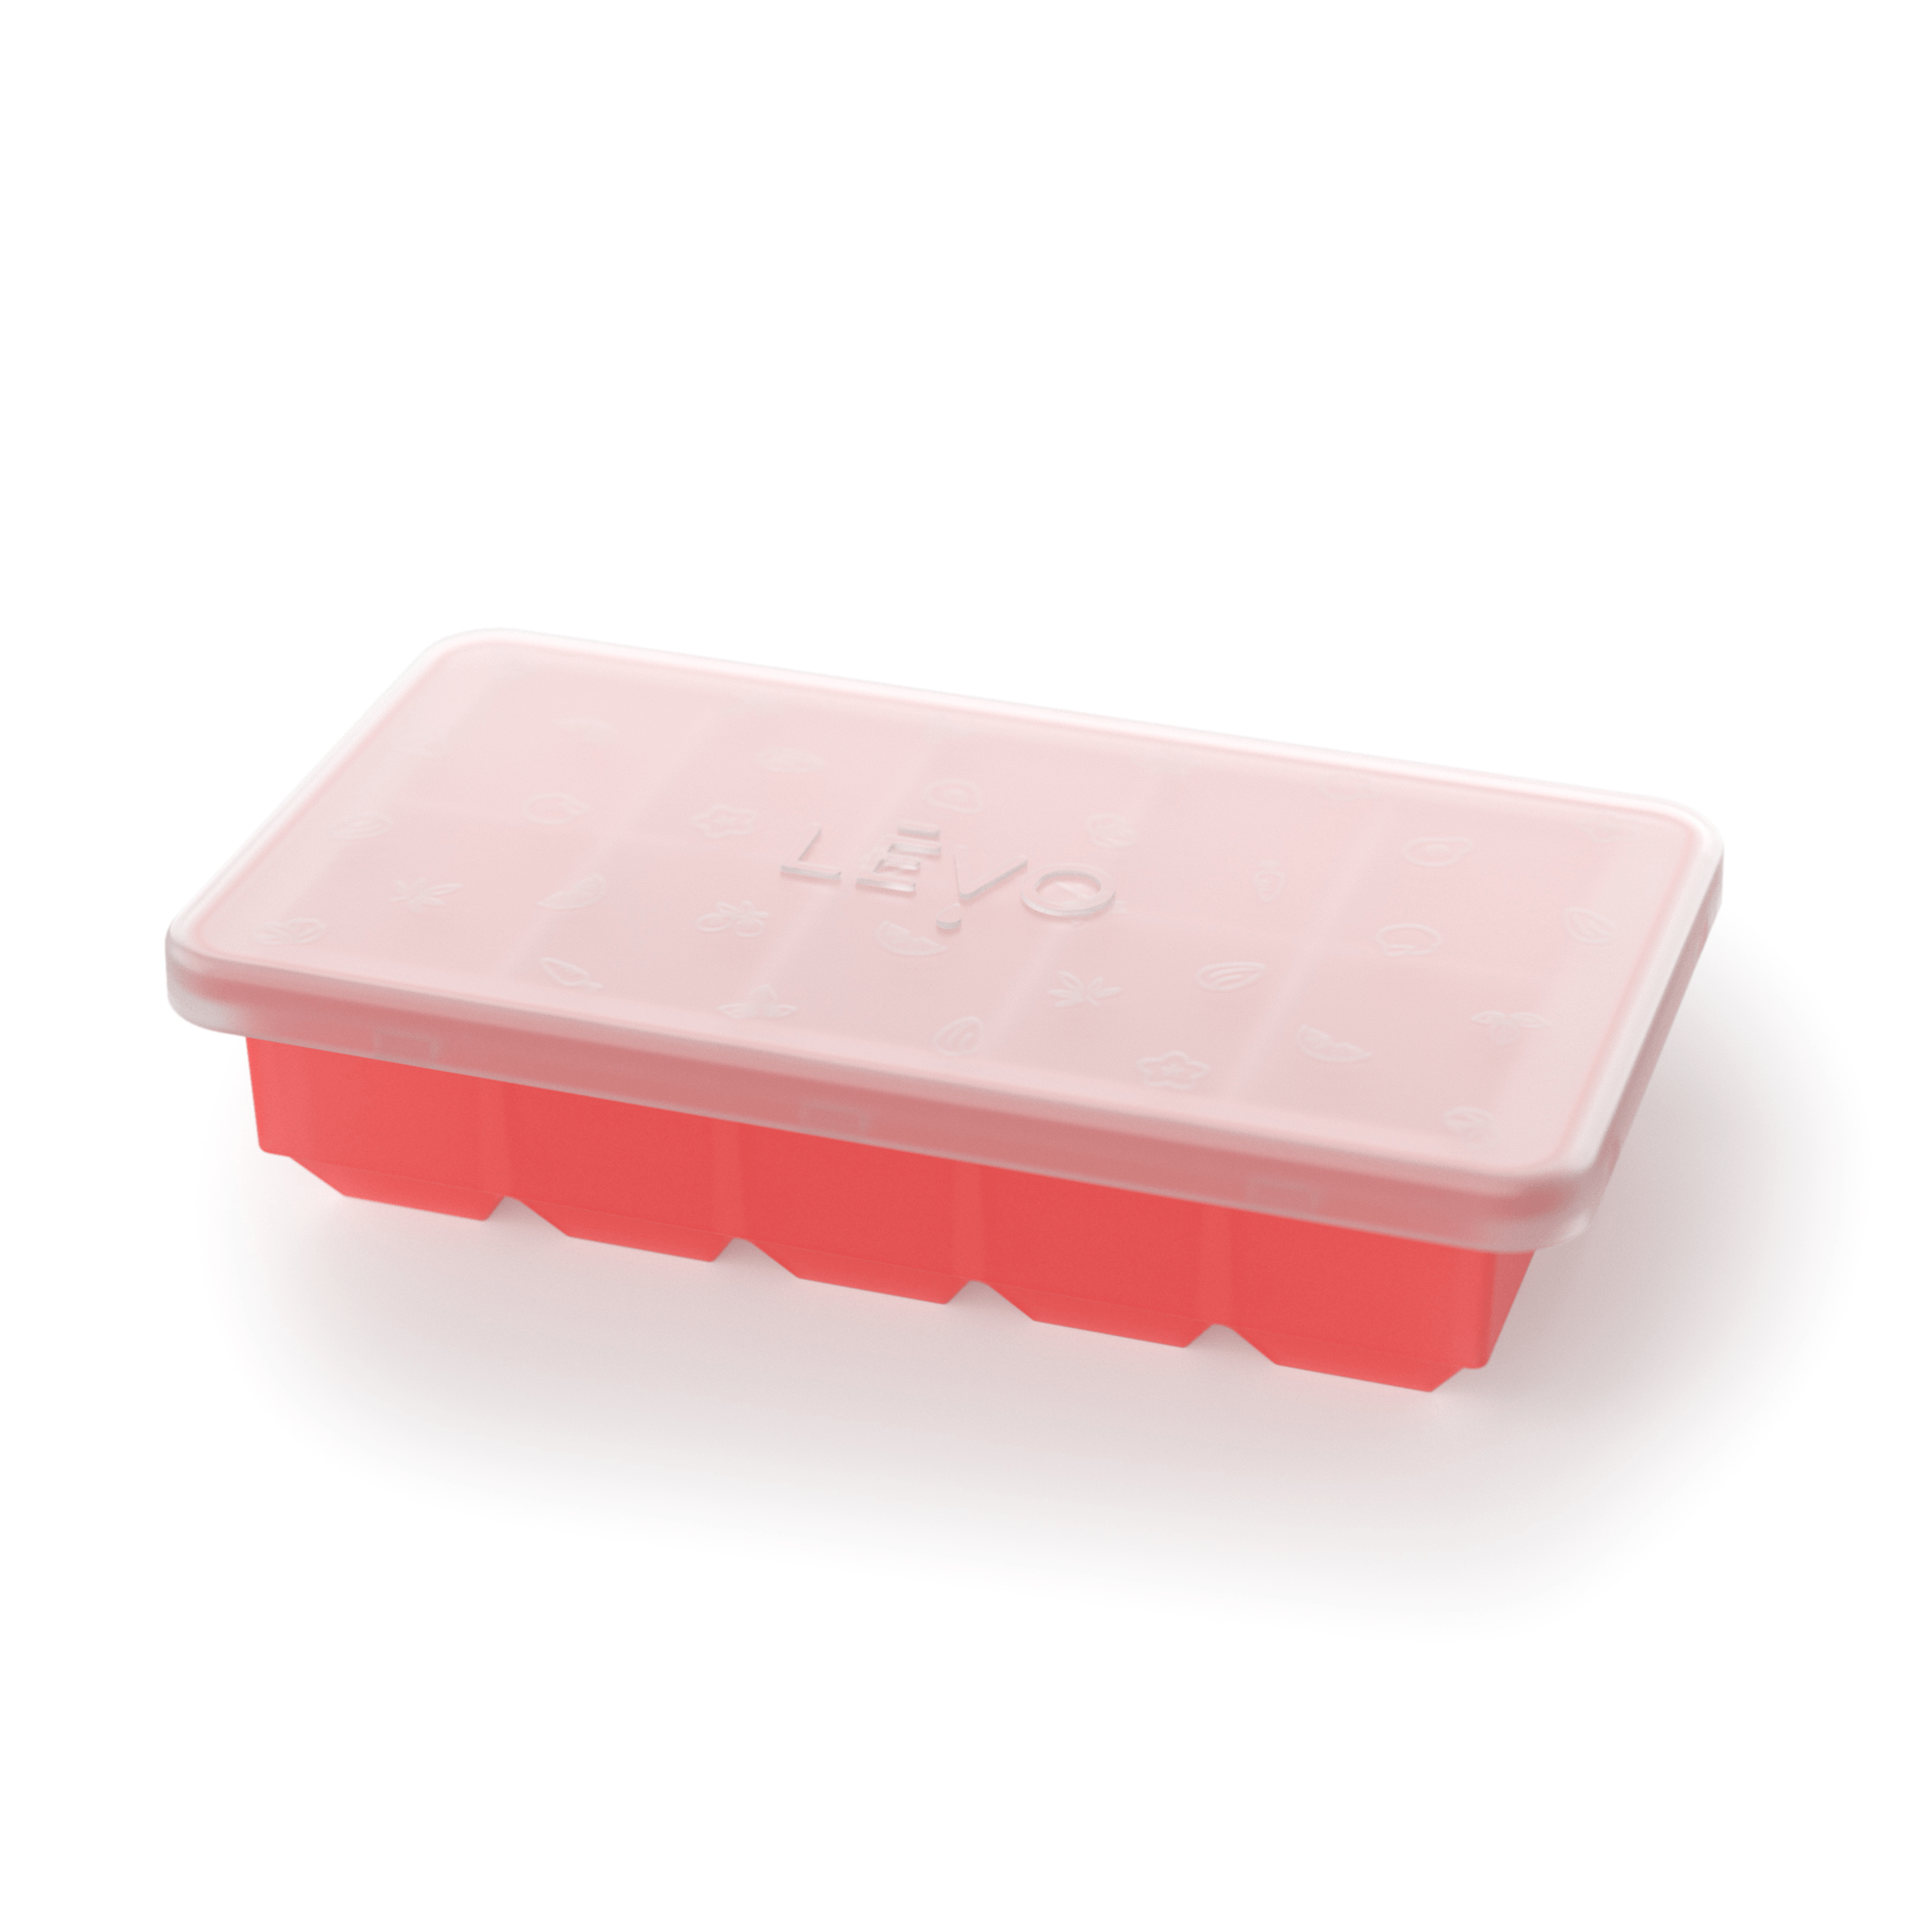 LEVO Oil Herb Block Storage Tray in red.